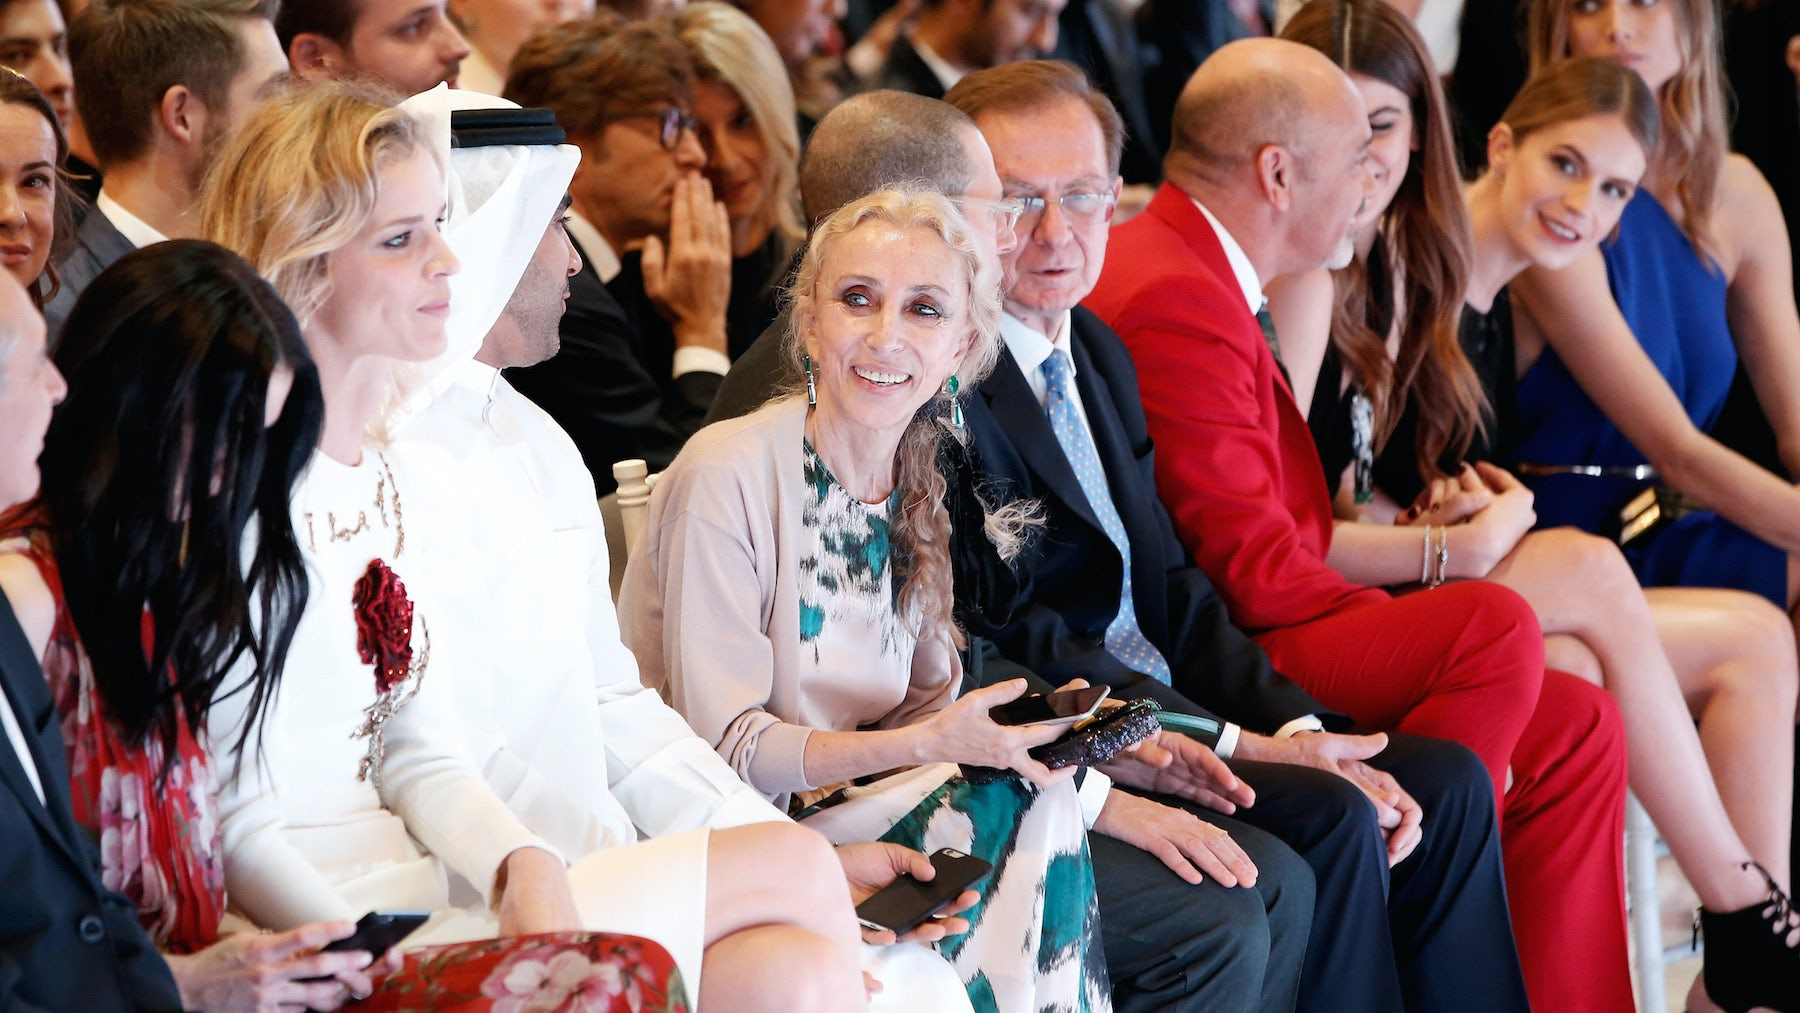 Franca Sozzani at the Vogue Fashion Dubai Experience runway show | Source: John Phillips/Getty